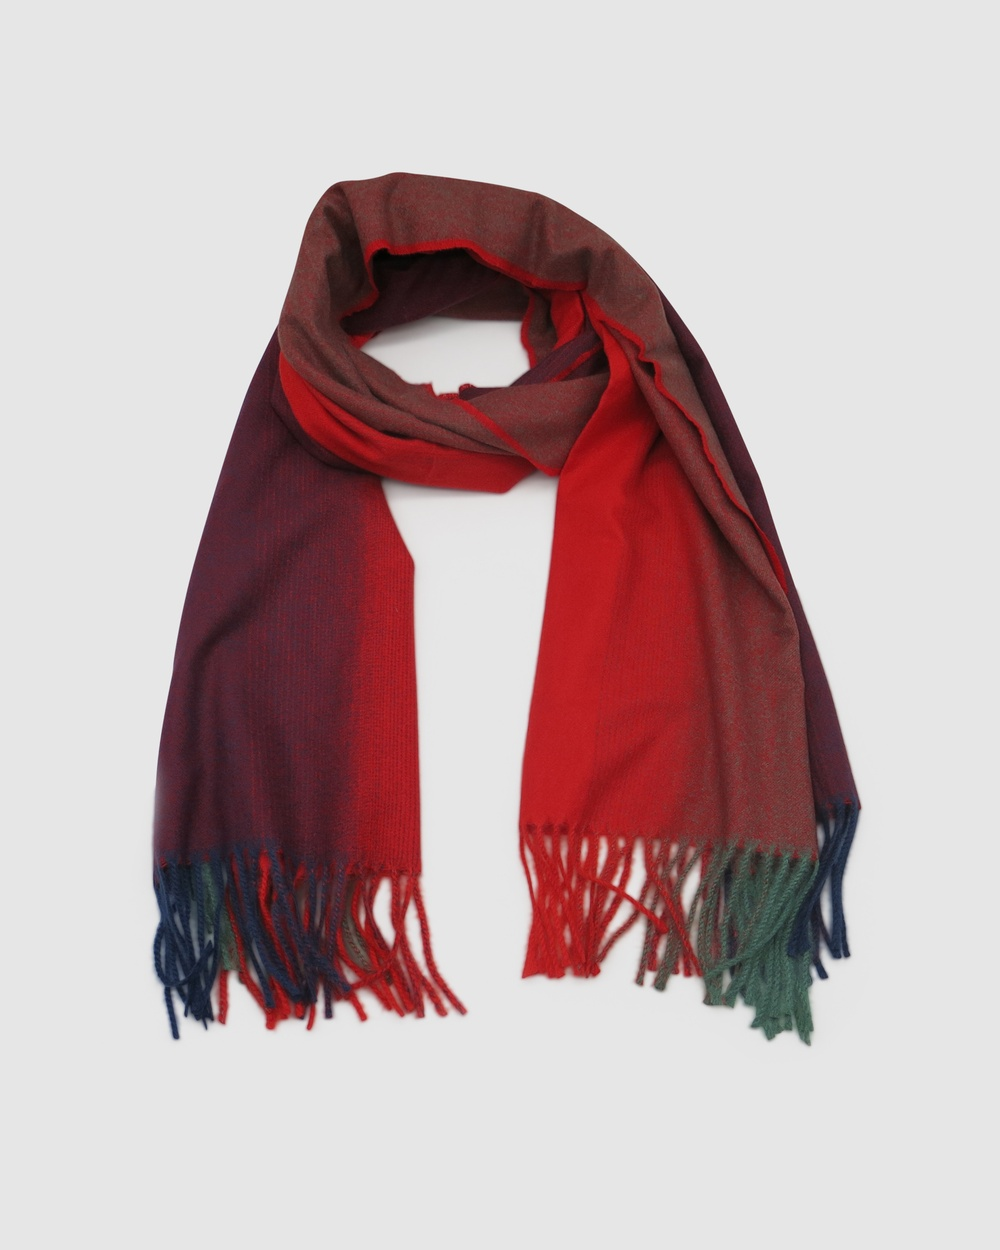 Morgan & Taylor Ruby Scarf Scarves Gloves Red